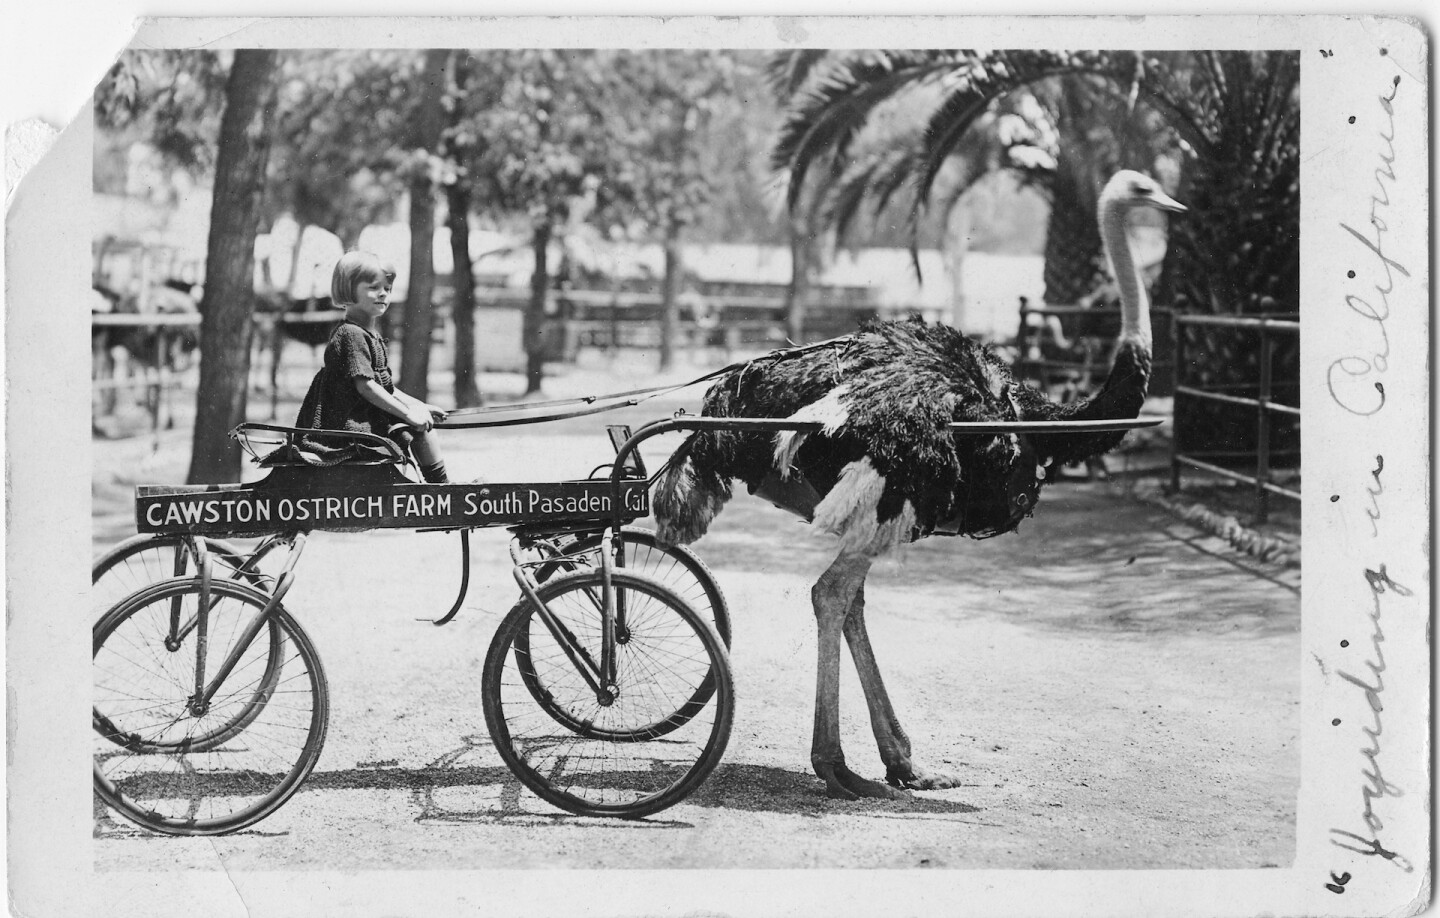 Young Betty Lou Young at the Cawston Ostrich Farm circa 1922. Courtesy of Randy Young.